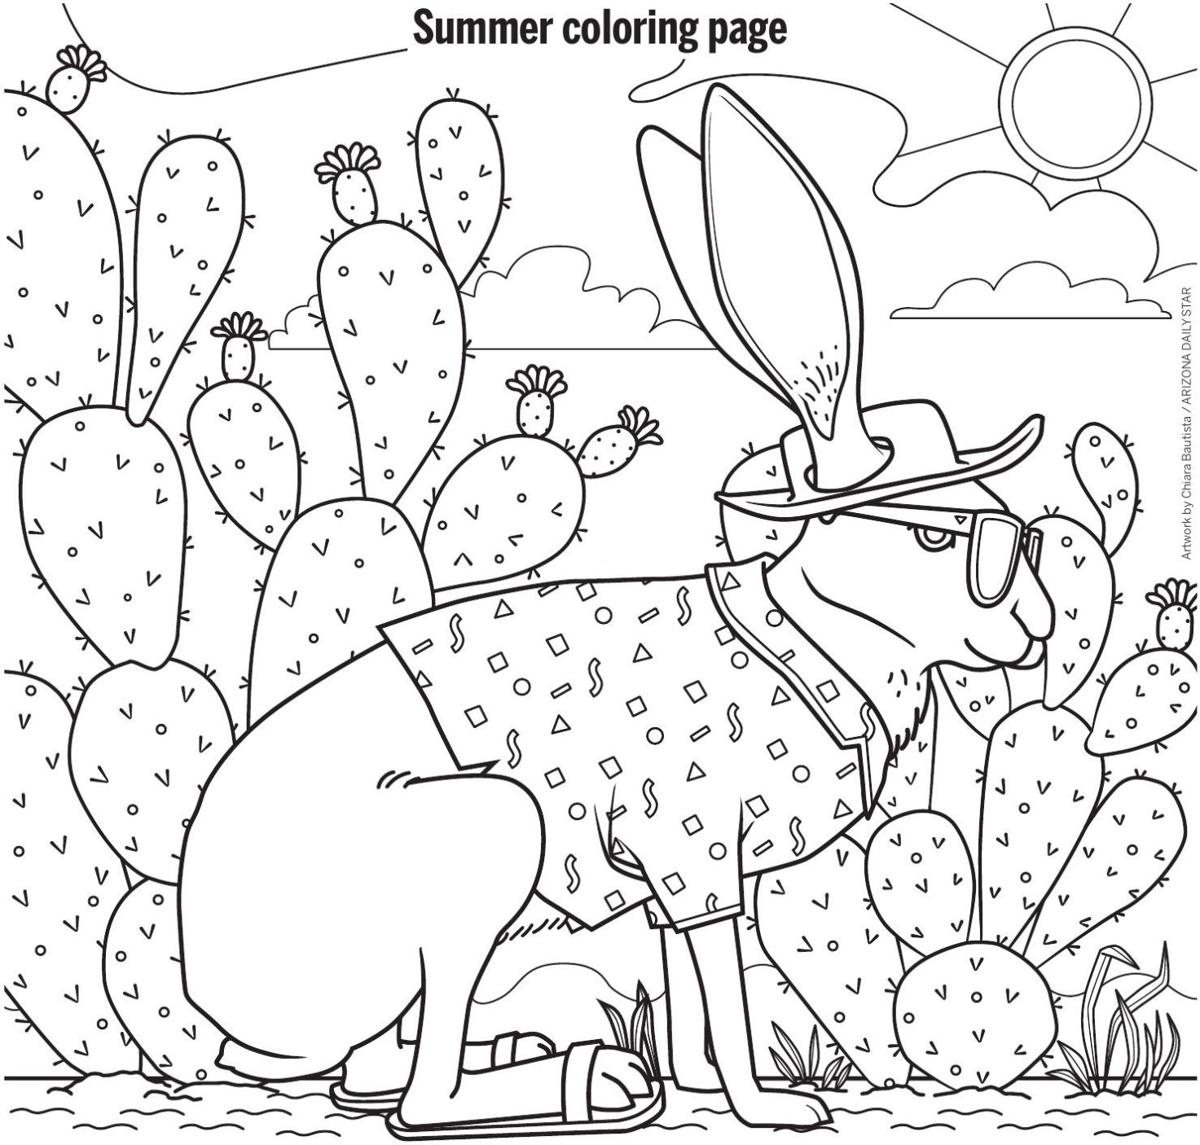 July 11 coloring page